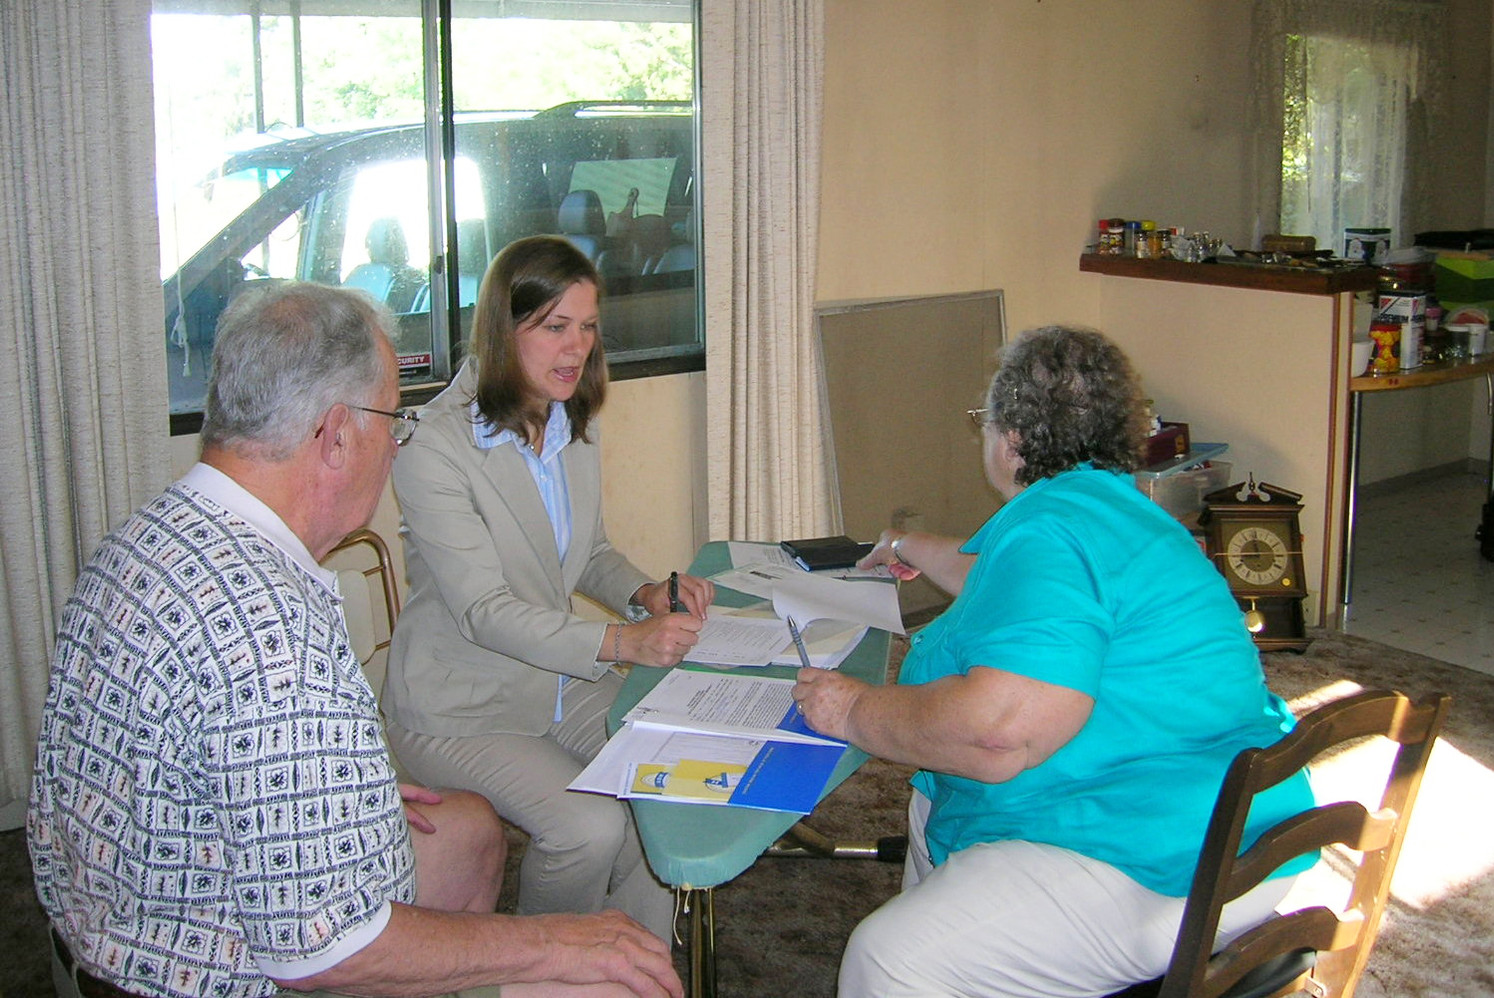 2006 ~ Meeting with Clients to Sell Their Home